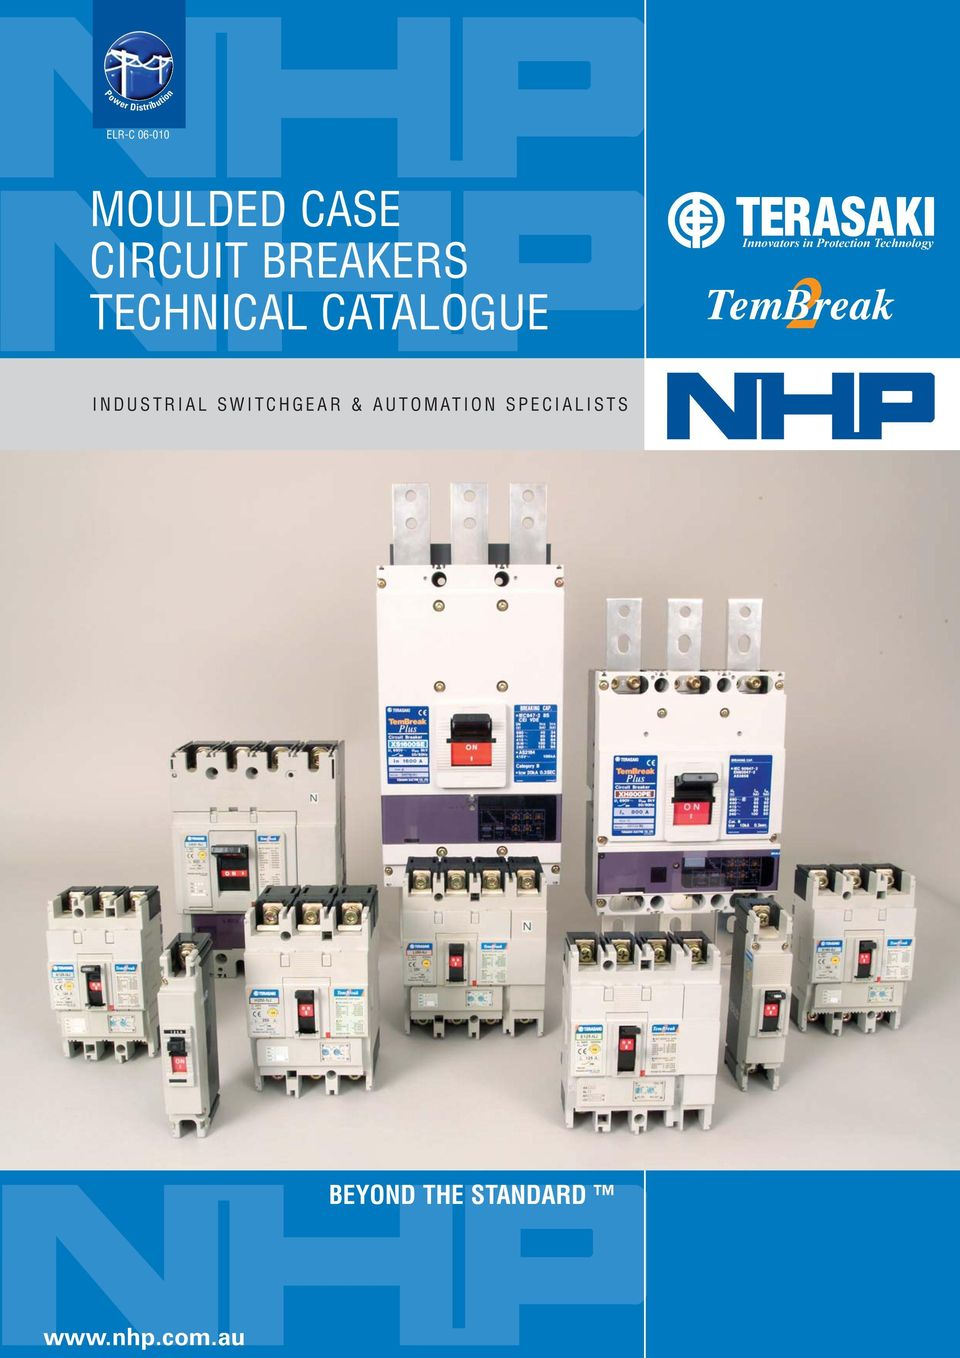 Moulded Case Circuit Breakers Technical Catalogue Pdf Engine Generator Molded Breaker Mccb Line In Protection Technology Industrial Switchgear